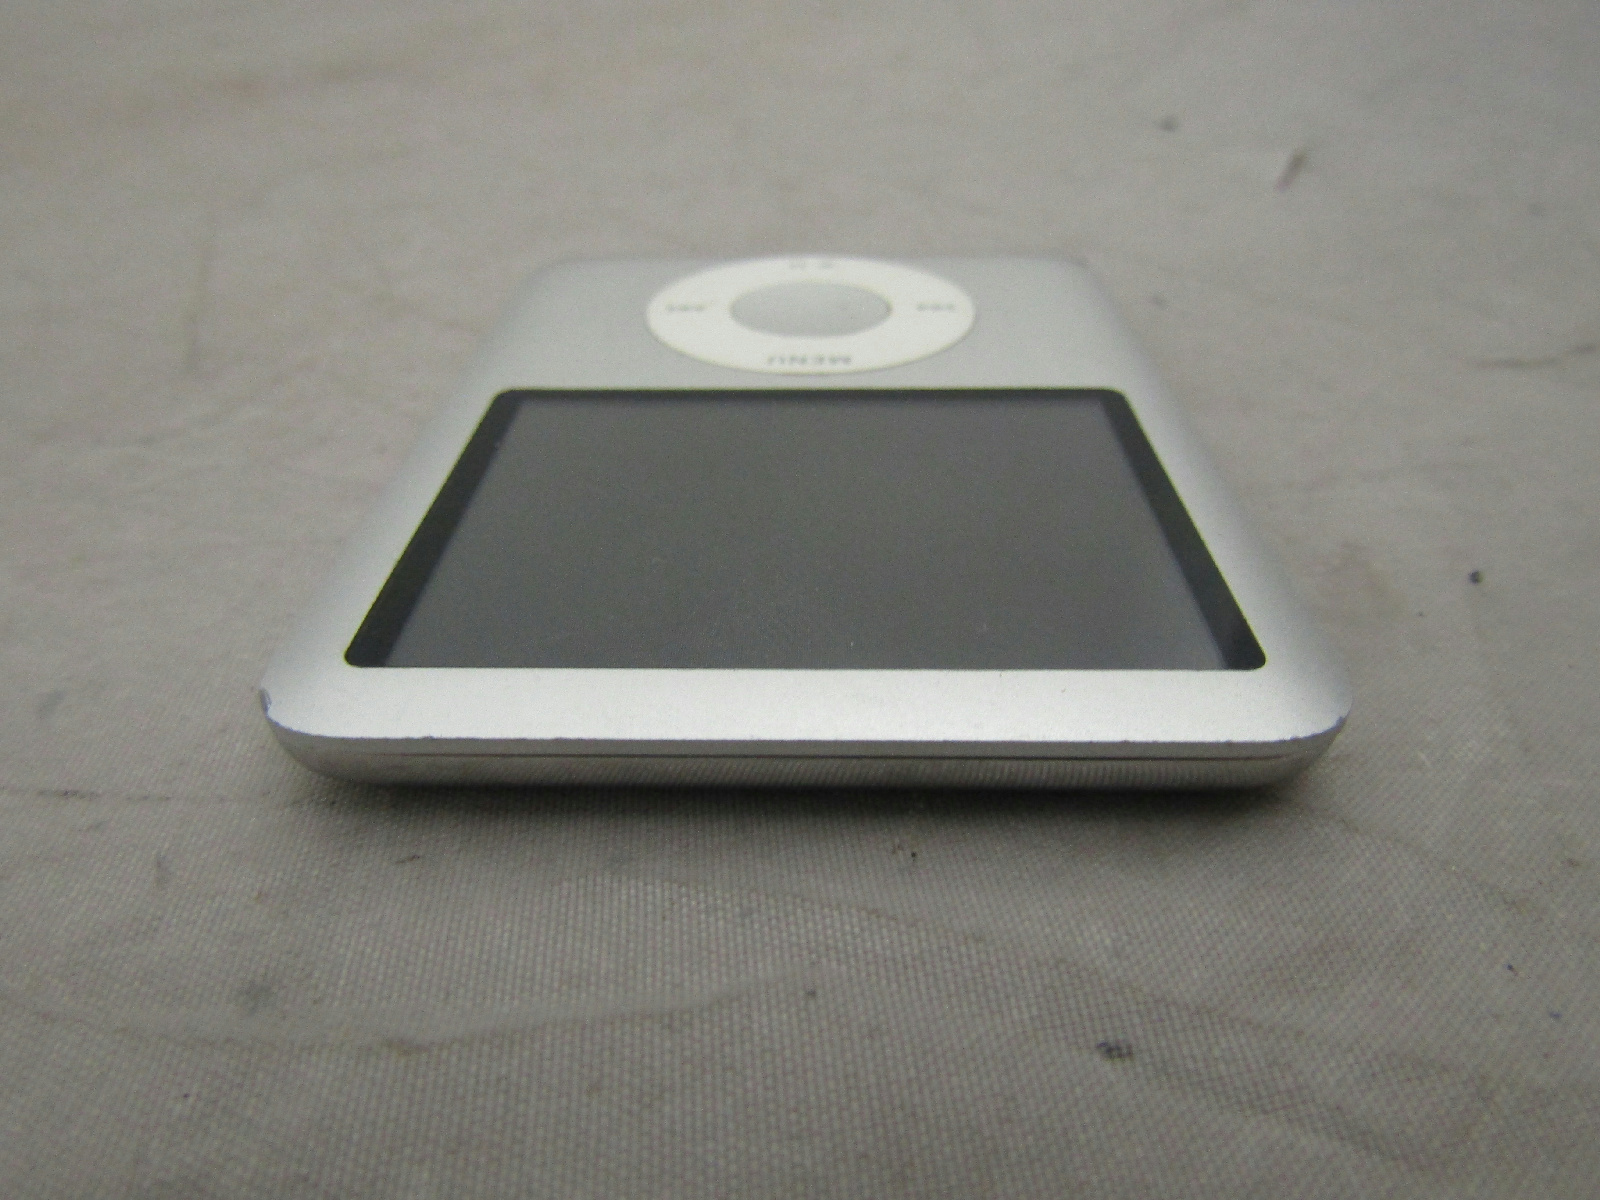 Apple Ipod Nano 3rd Gen 4gb Silver Model A1236 Parts